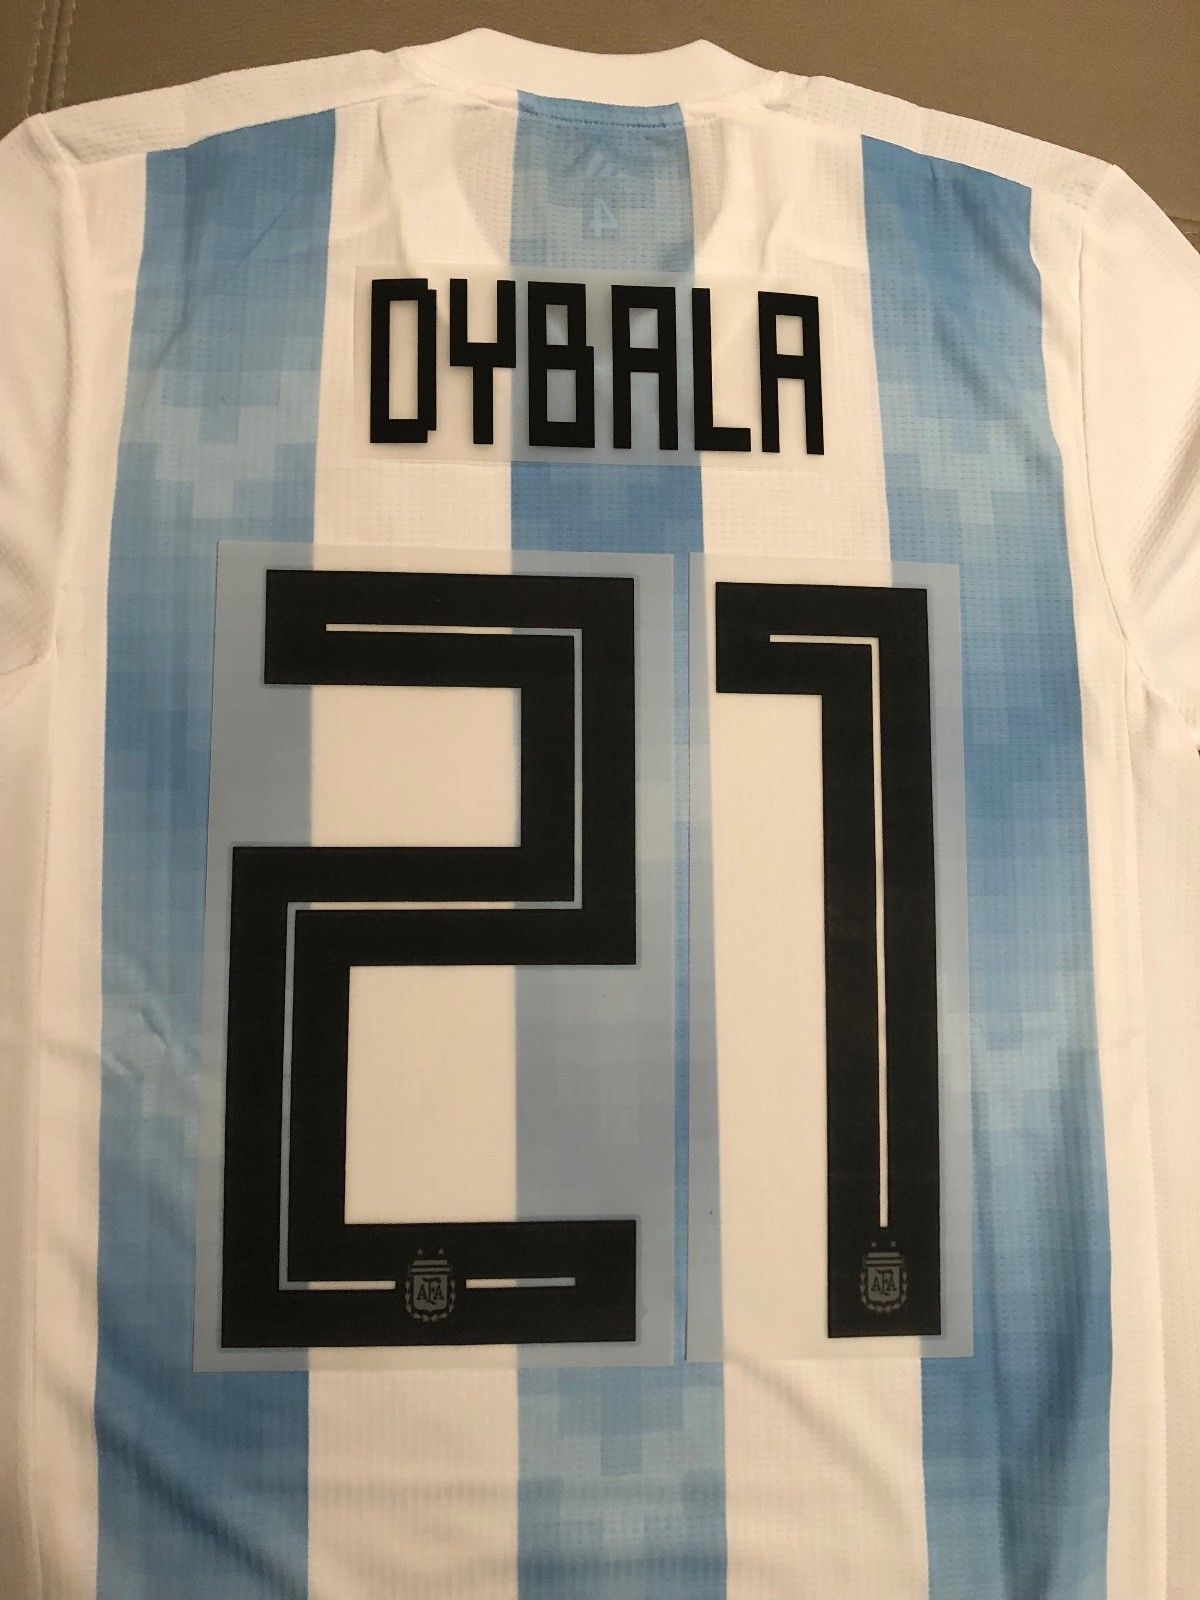 0d9f800a8d4 DYBALA 2018 World Cup Argentina  21 Name Number Professional Size Discount  Price 40.00 Free Shipping